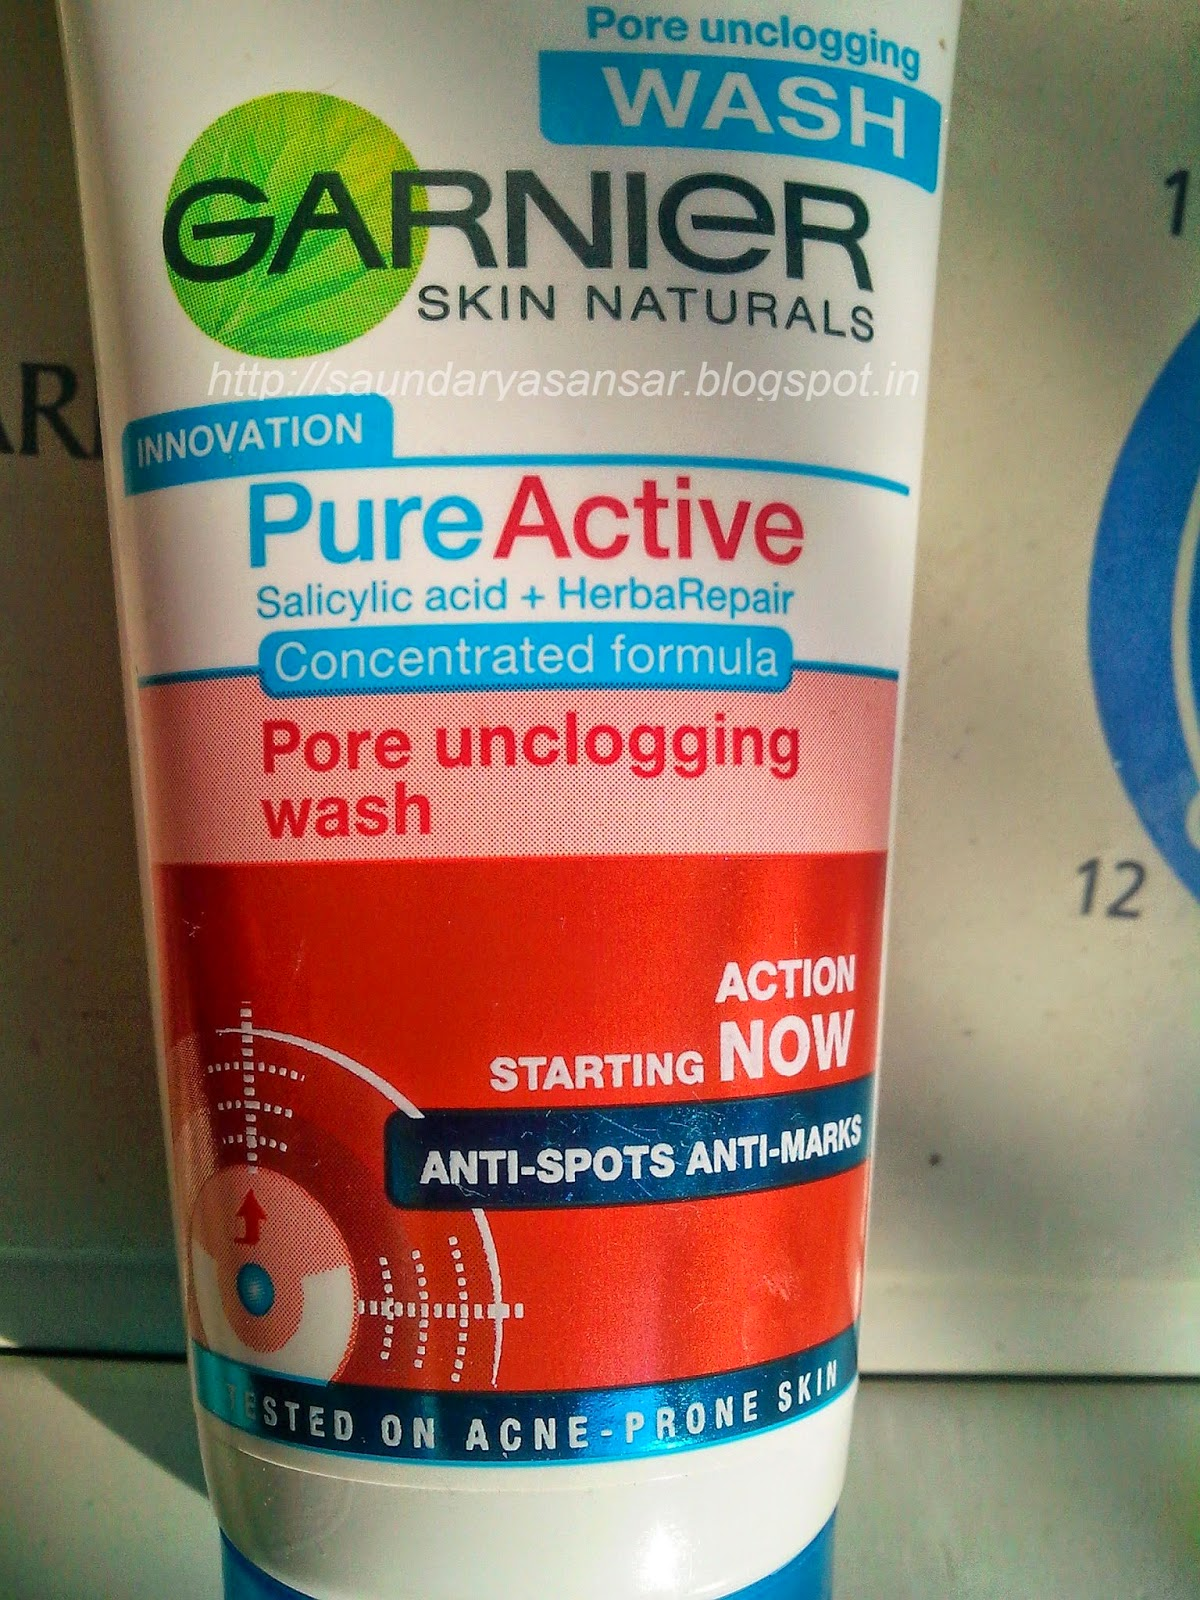 Pure Active Pore Unclogging Wash Review